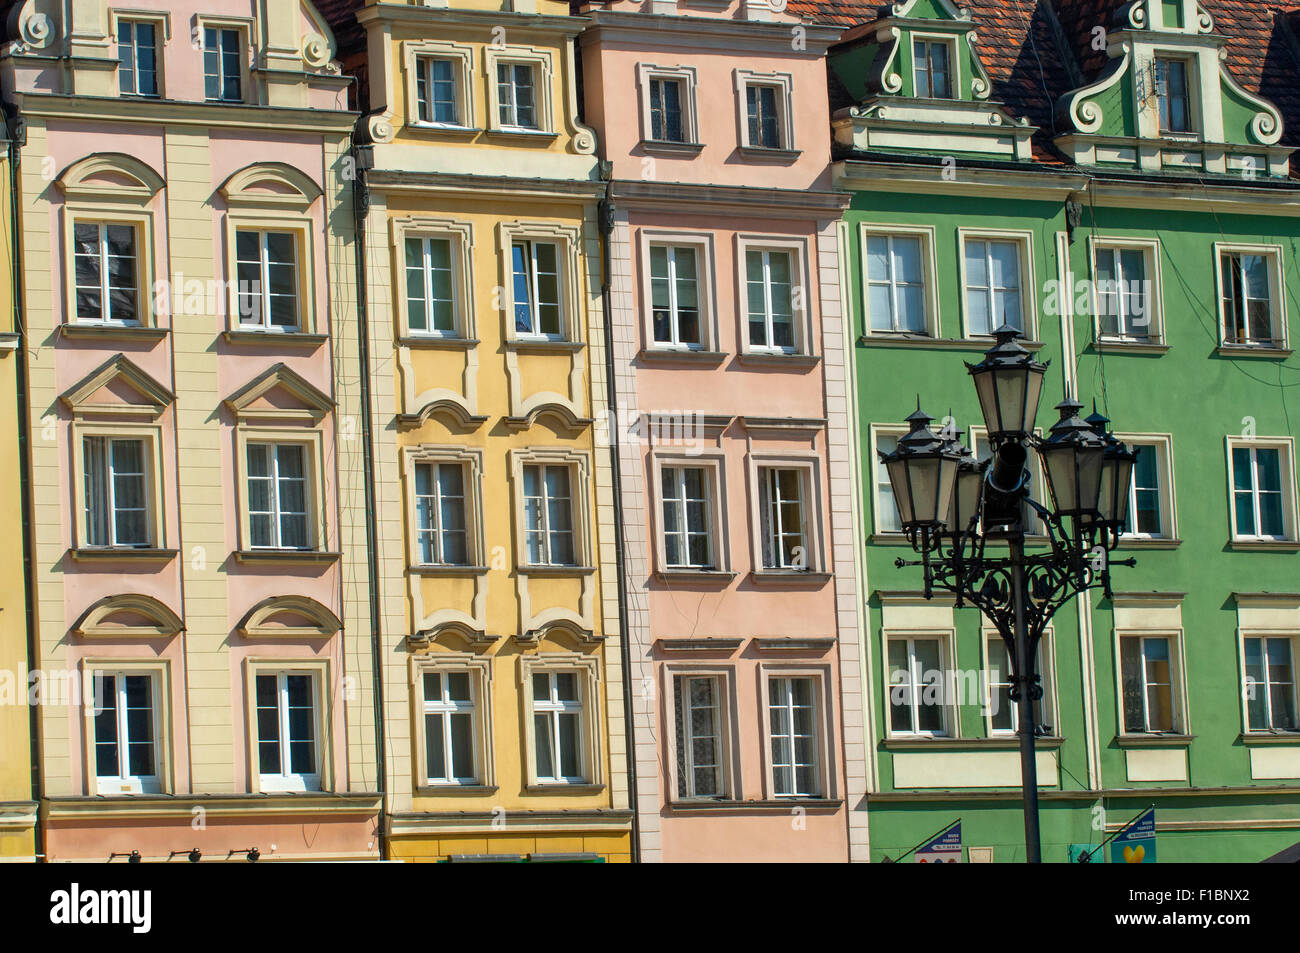 Houses dating from the 13th century in the medieval market square of the Rynek in Wroclaw, Poland. - Stock Image